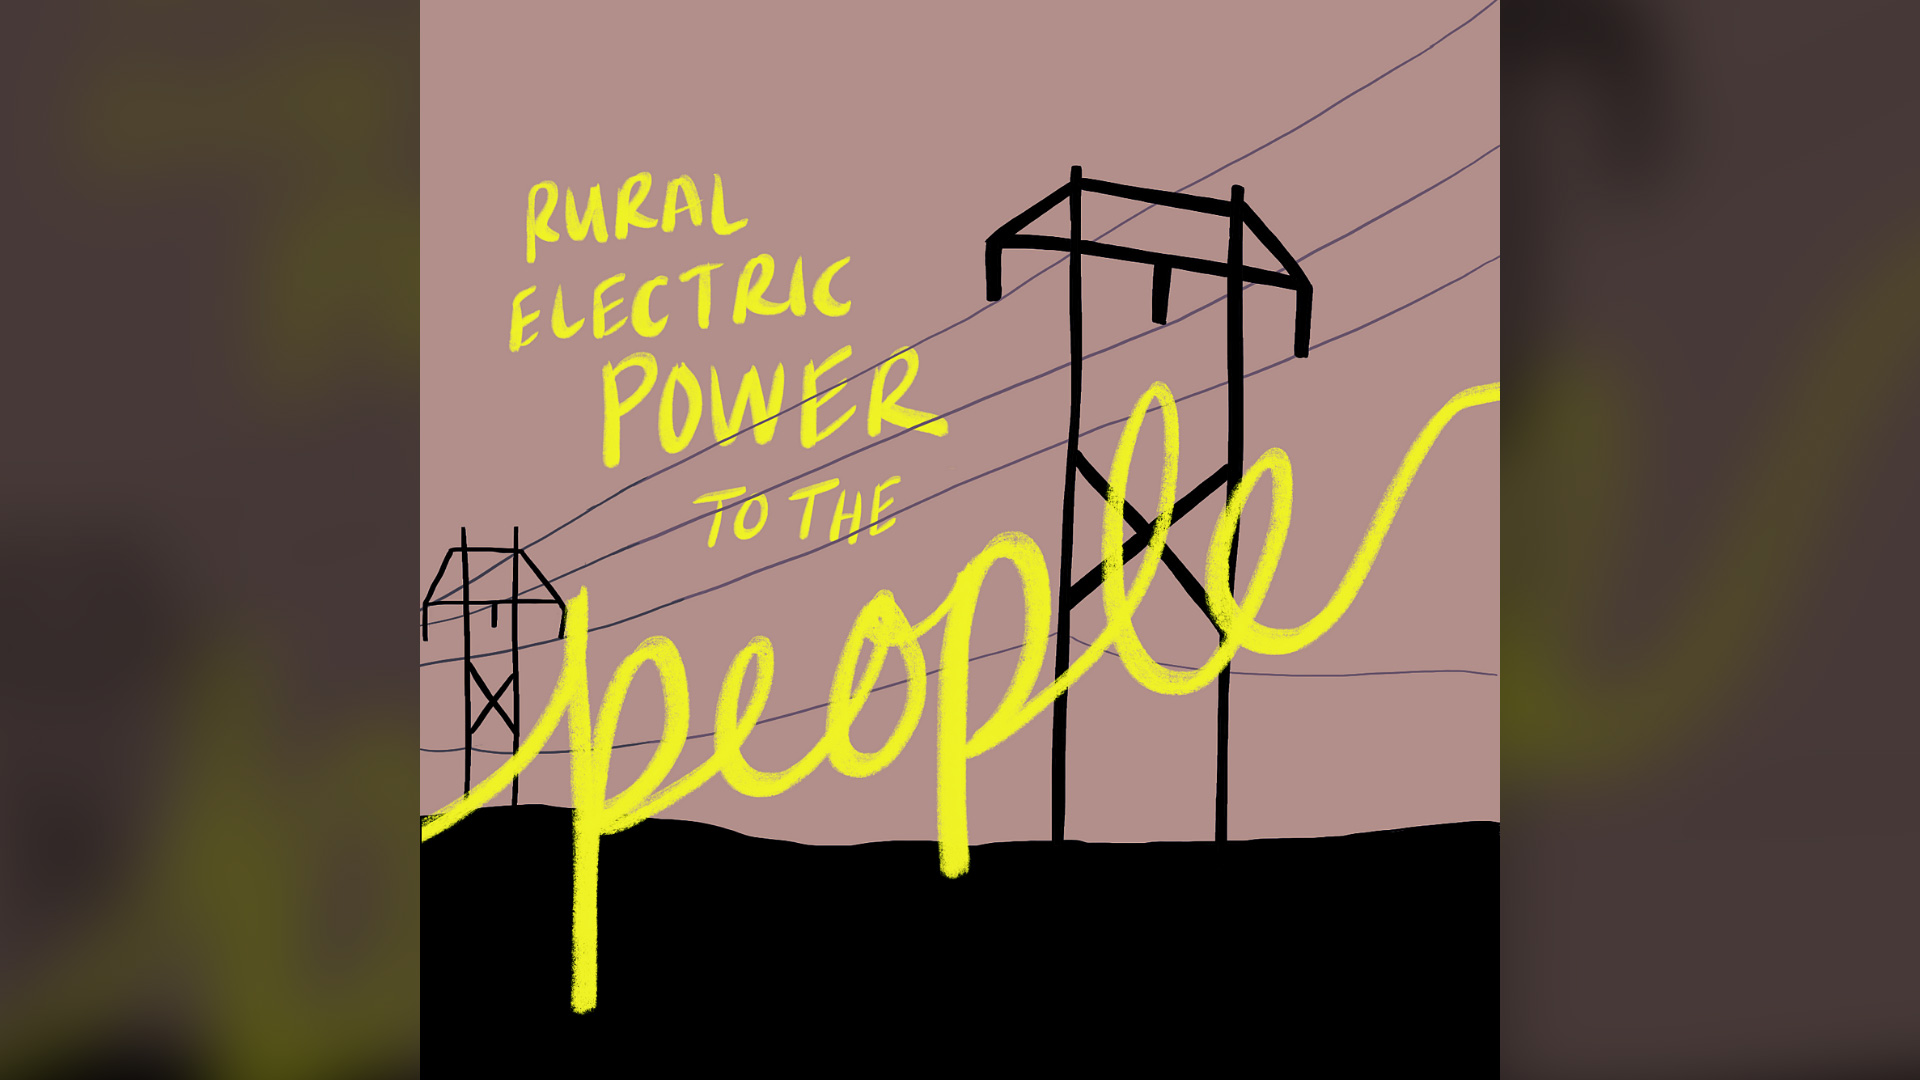 Rural electric power to the people!